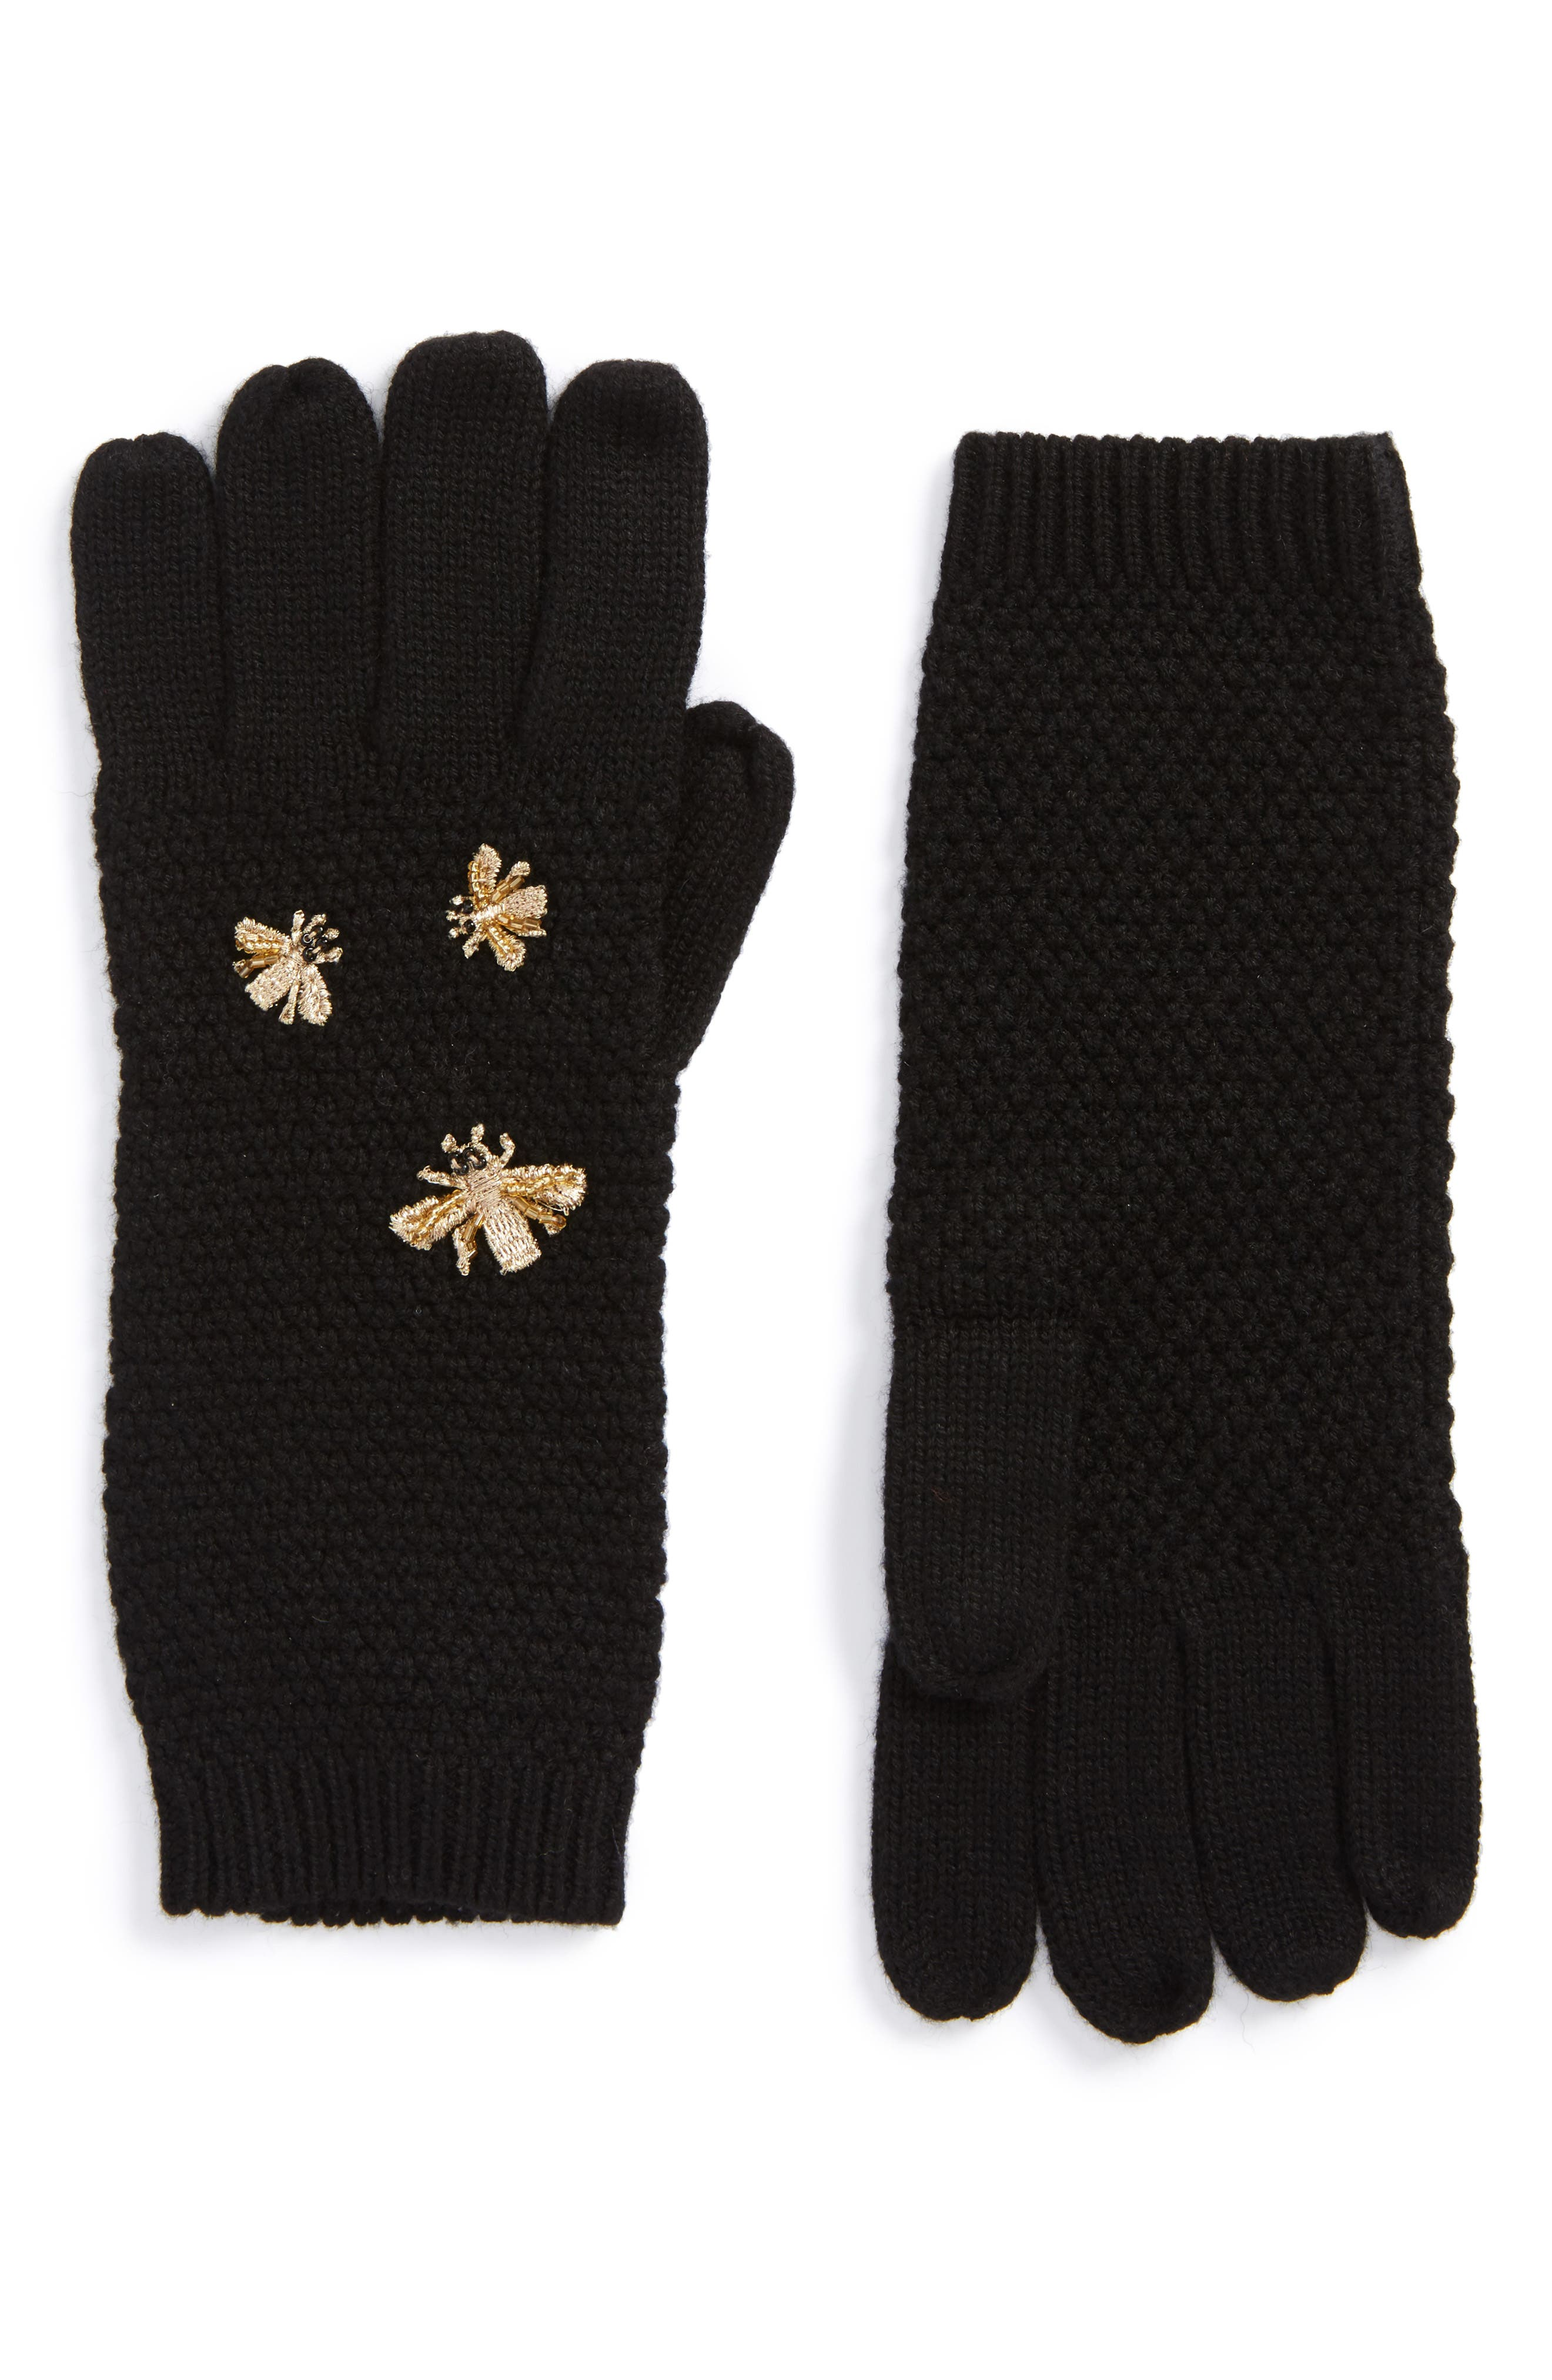 Alternate Image 1 Selected - BCBGMAXAZRIA The Bees Knees Embellished Gloves